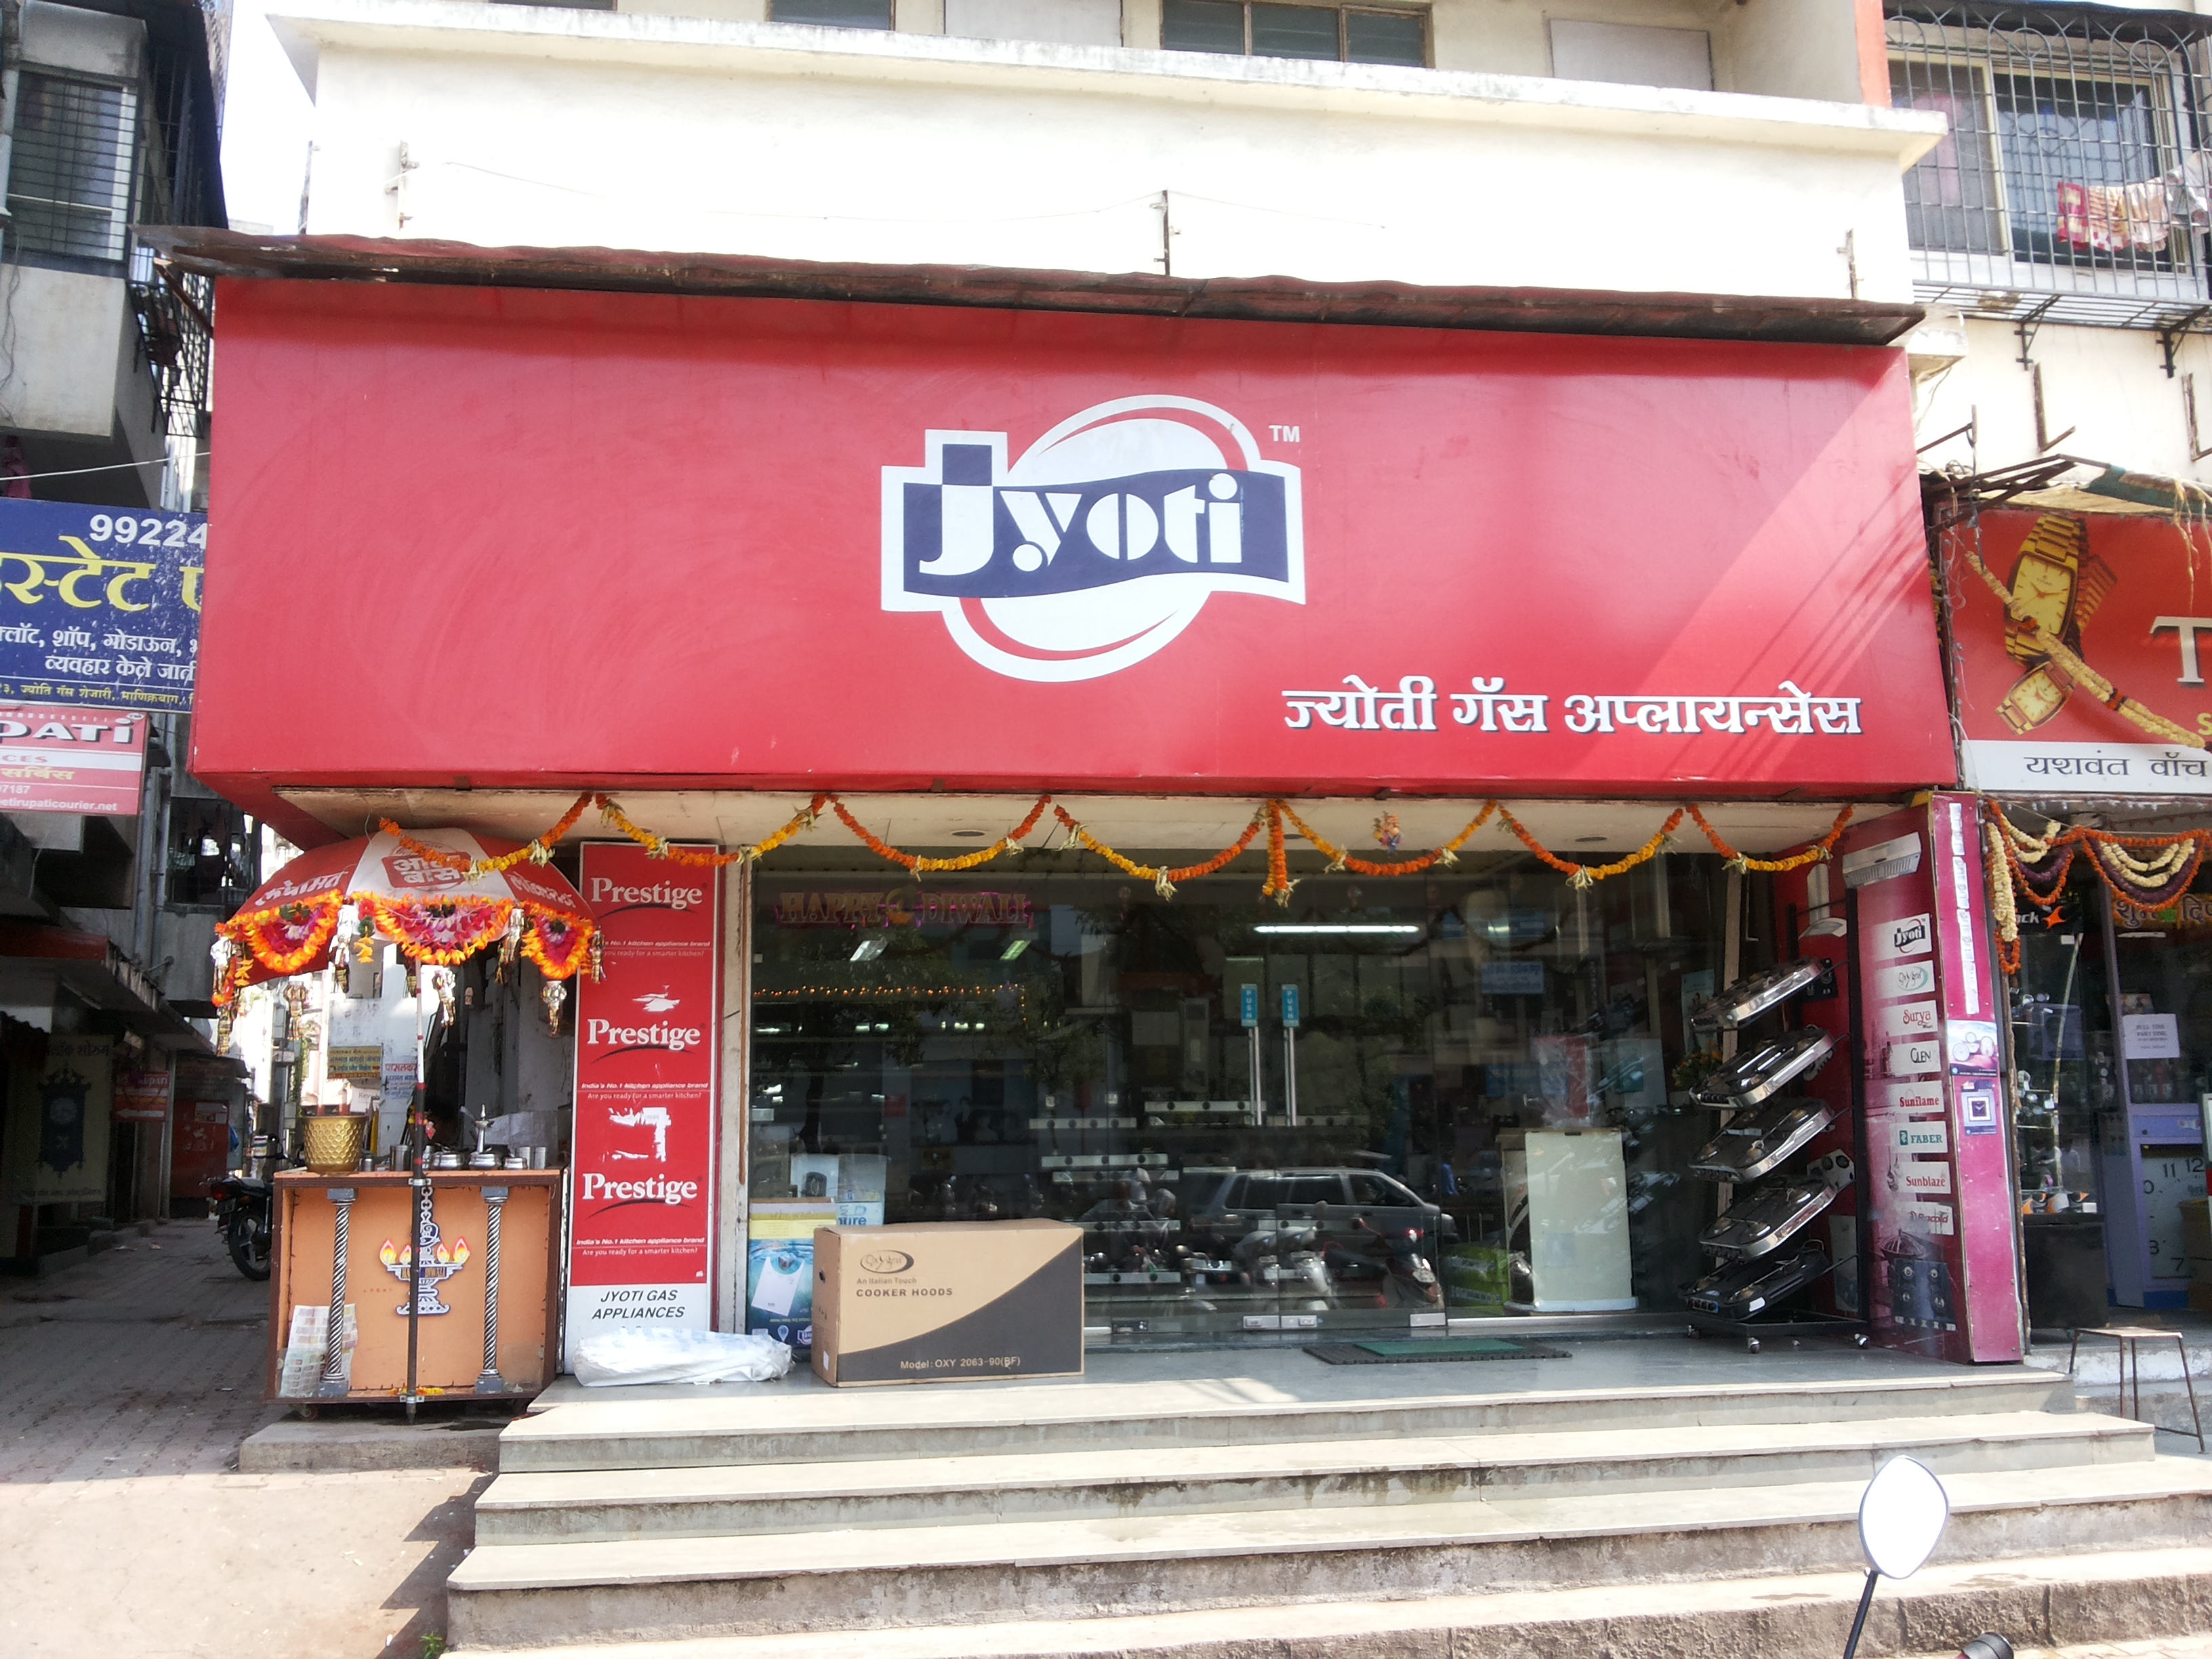 Jyoti Gas Appliances - Pune Image